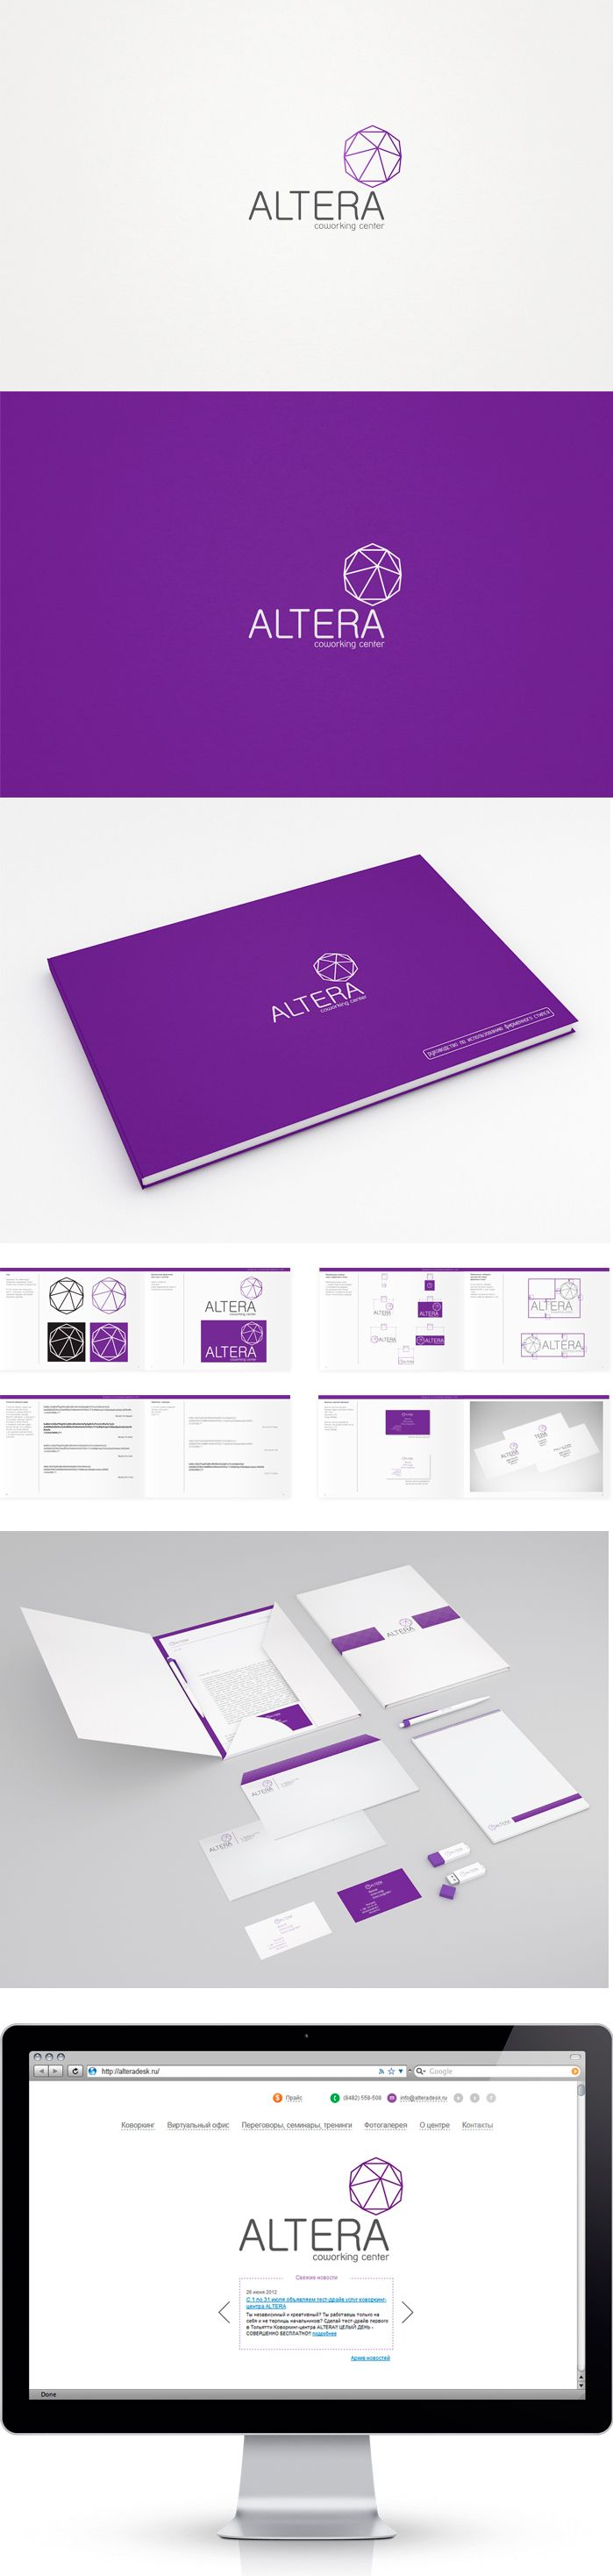 visual identity / altera #webdesign Olivet University